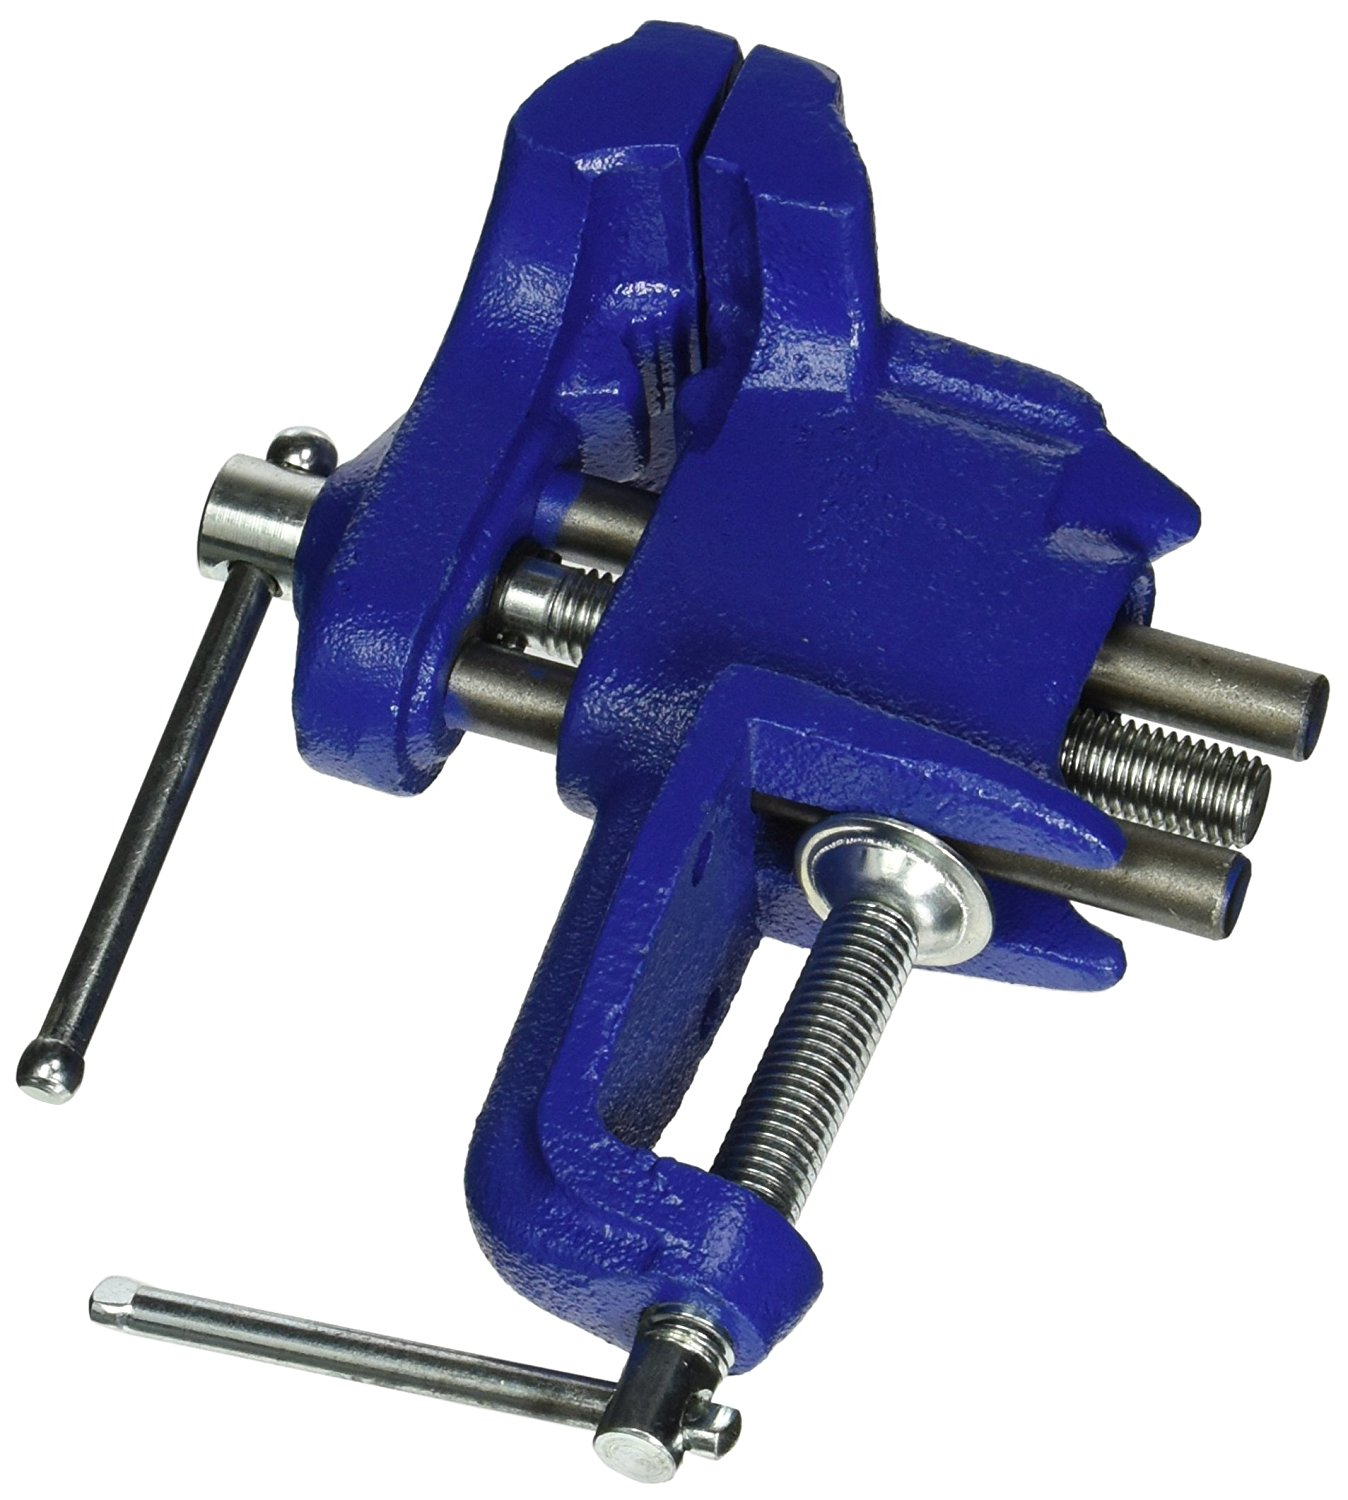 Amazing Best Bench Vise Reviews And Buying Guide 2019 Tools Critic Pabps2019 Chair Design Images Pabps2019Com